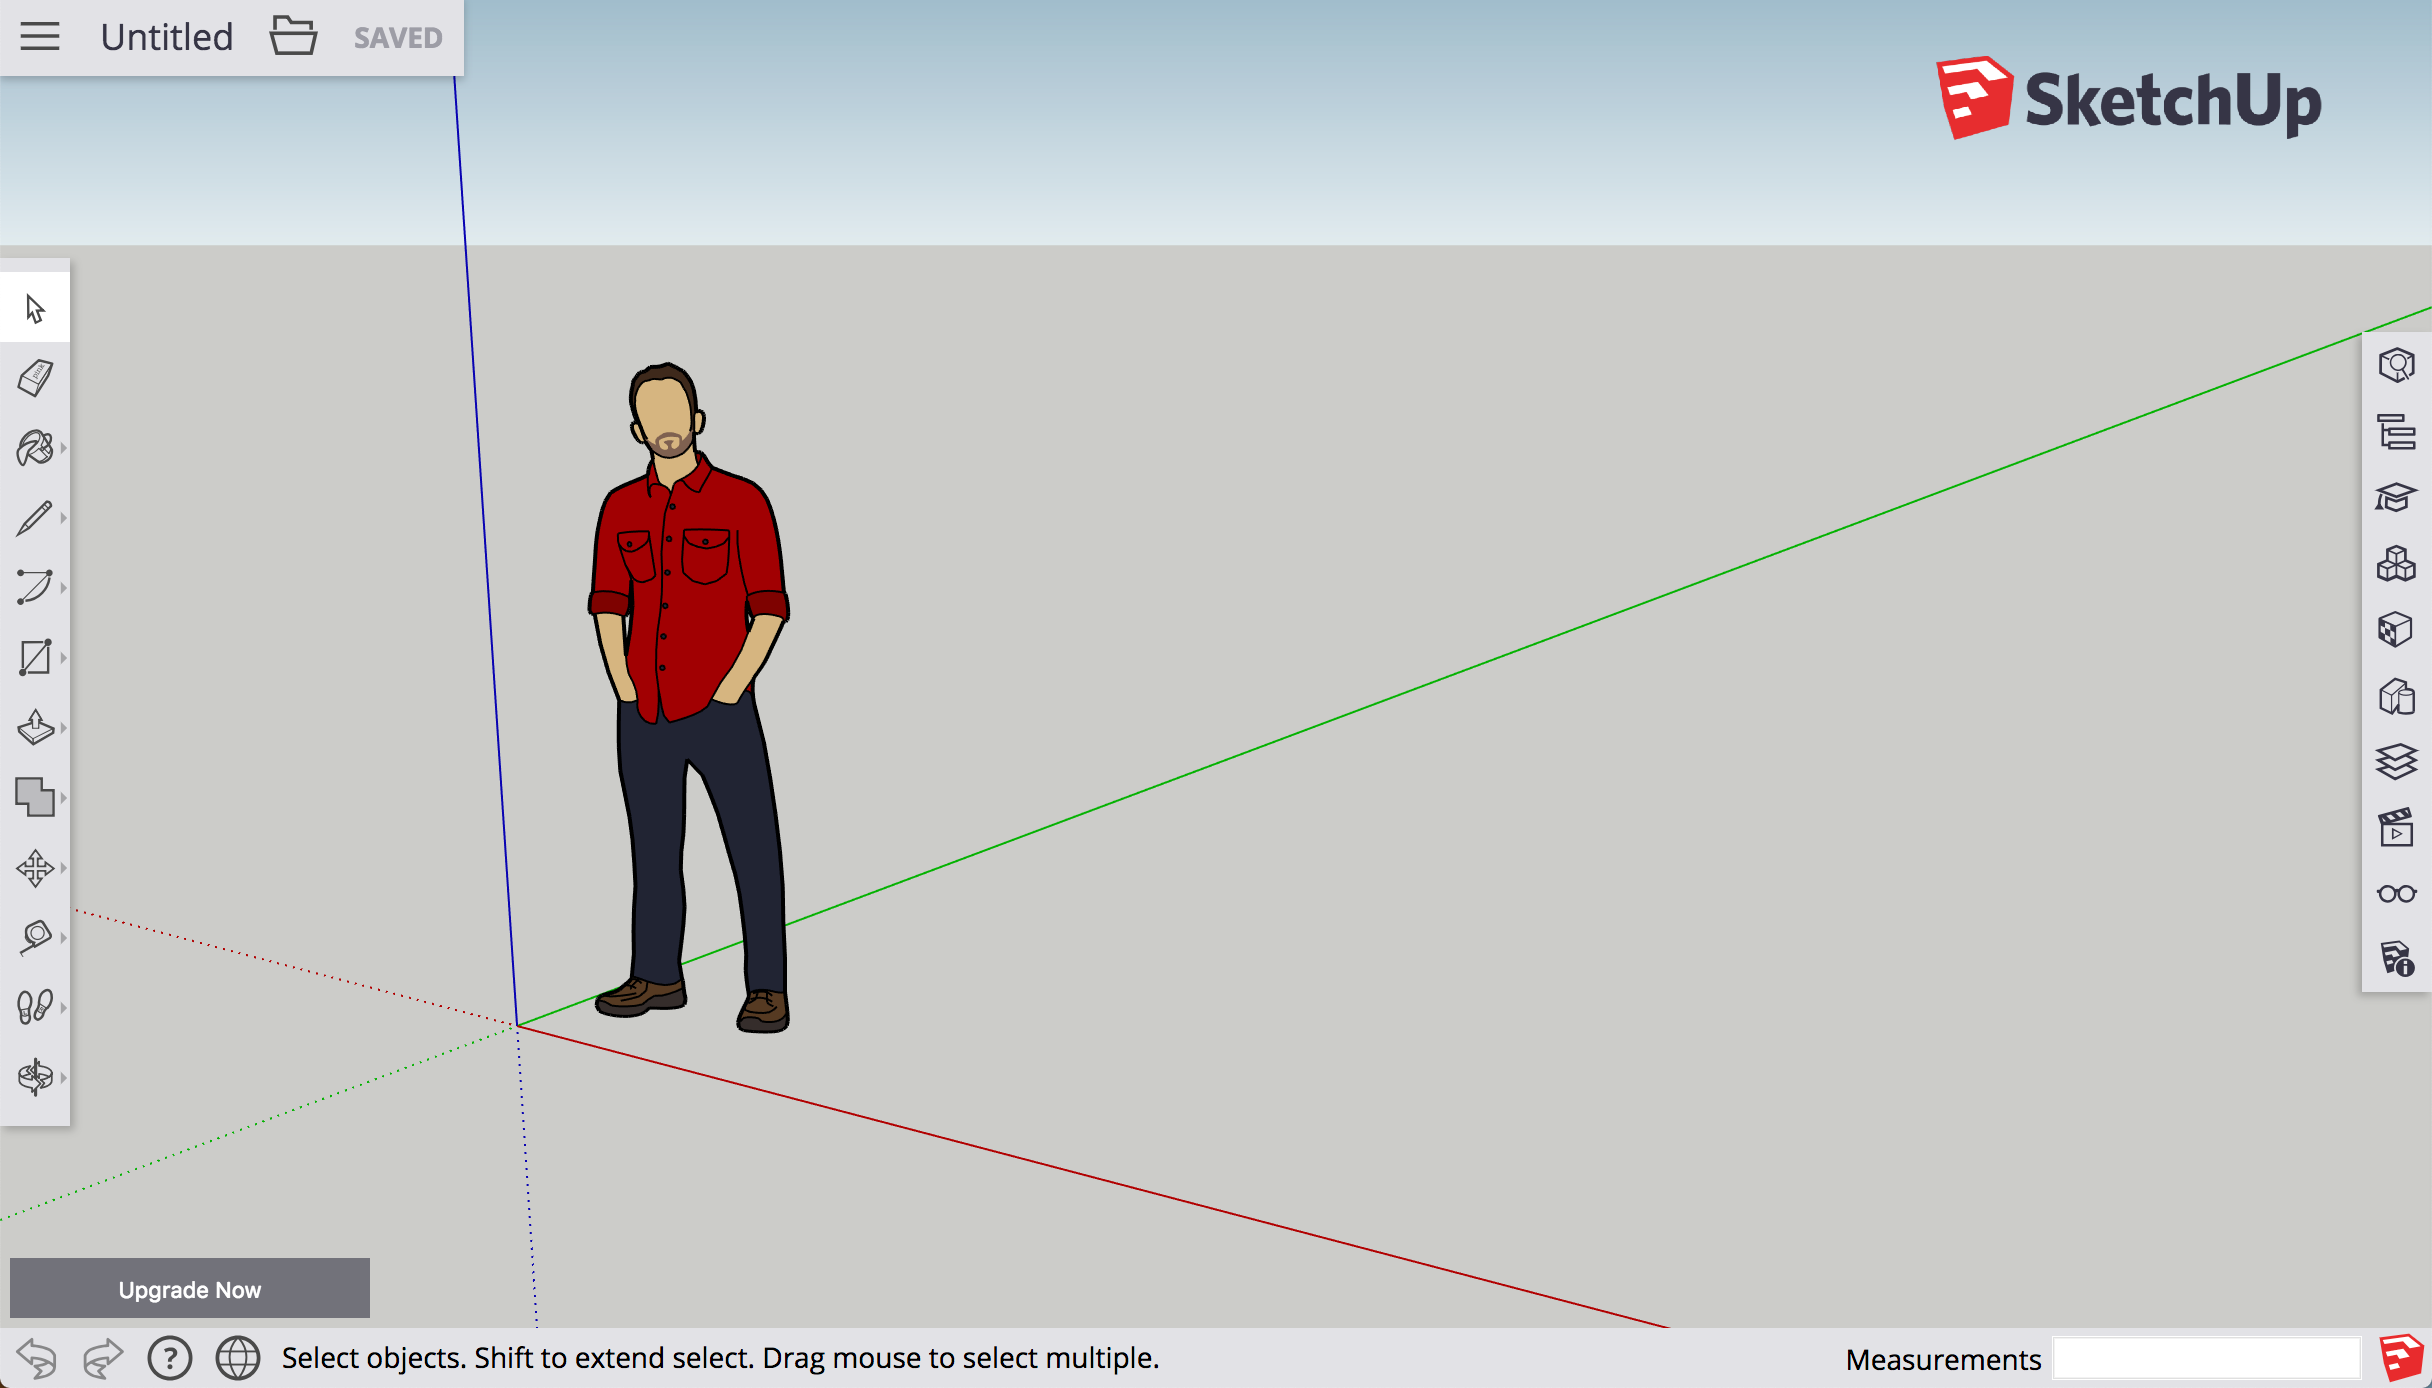 The SketchUp for Web interface offers drawing tools and features similar to SketchUp Pro